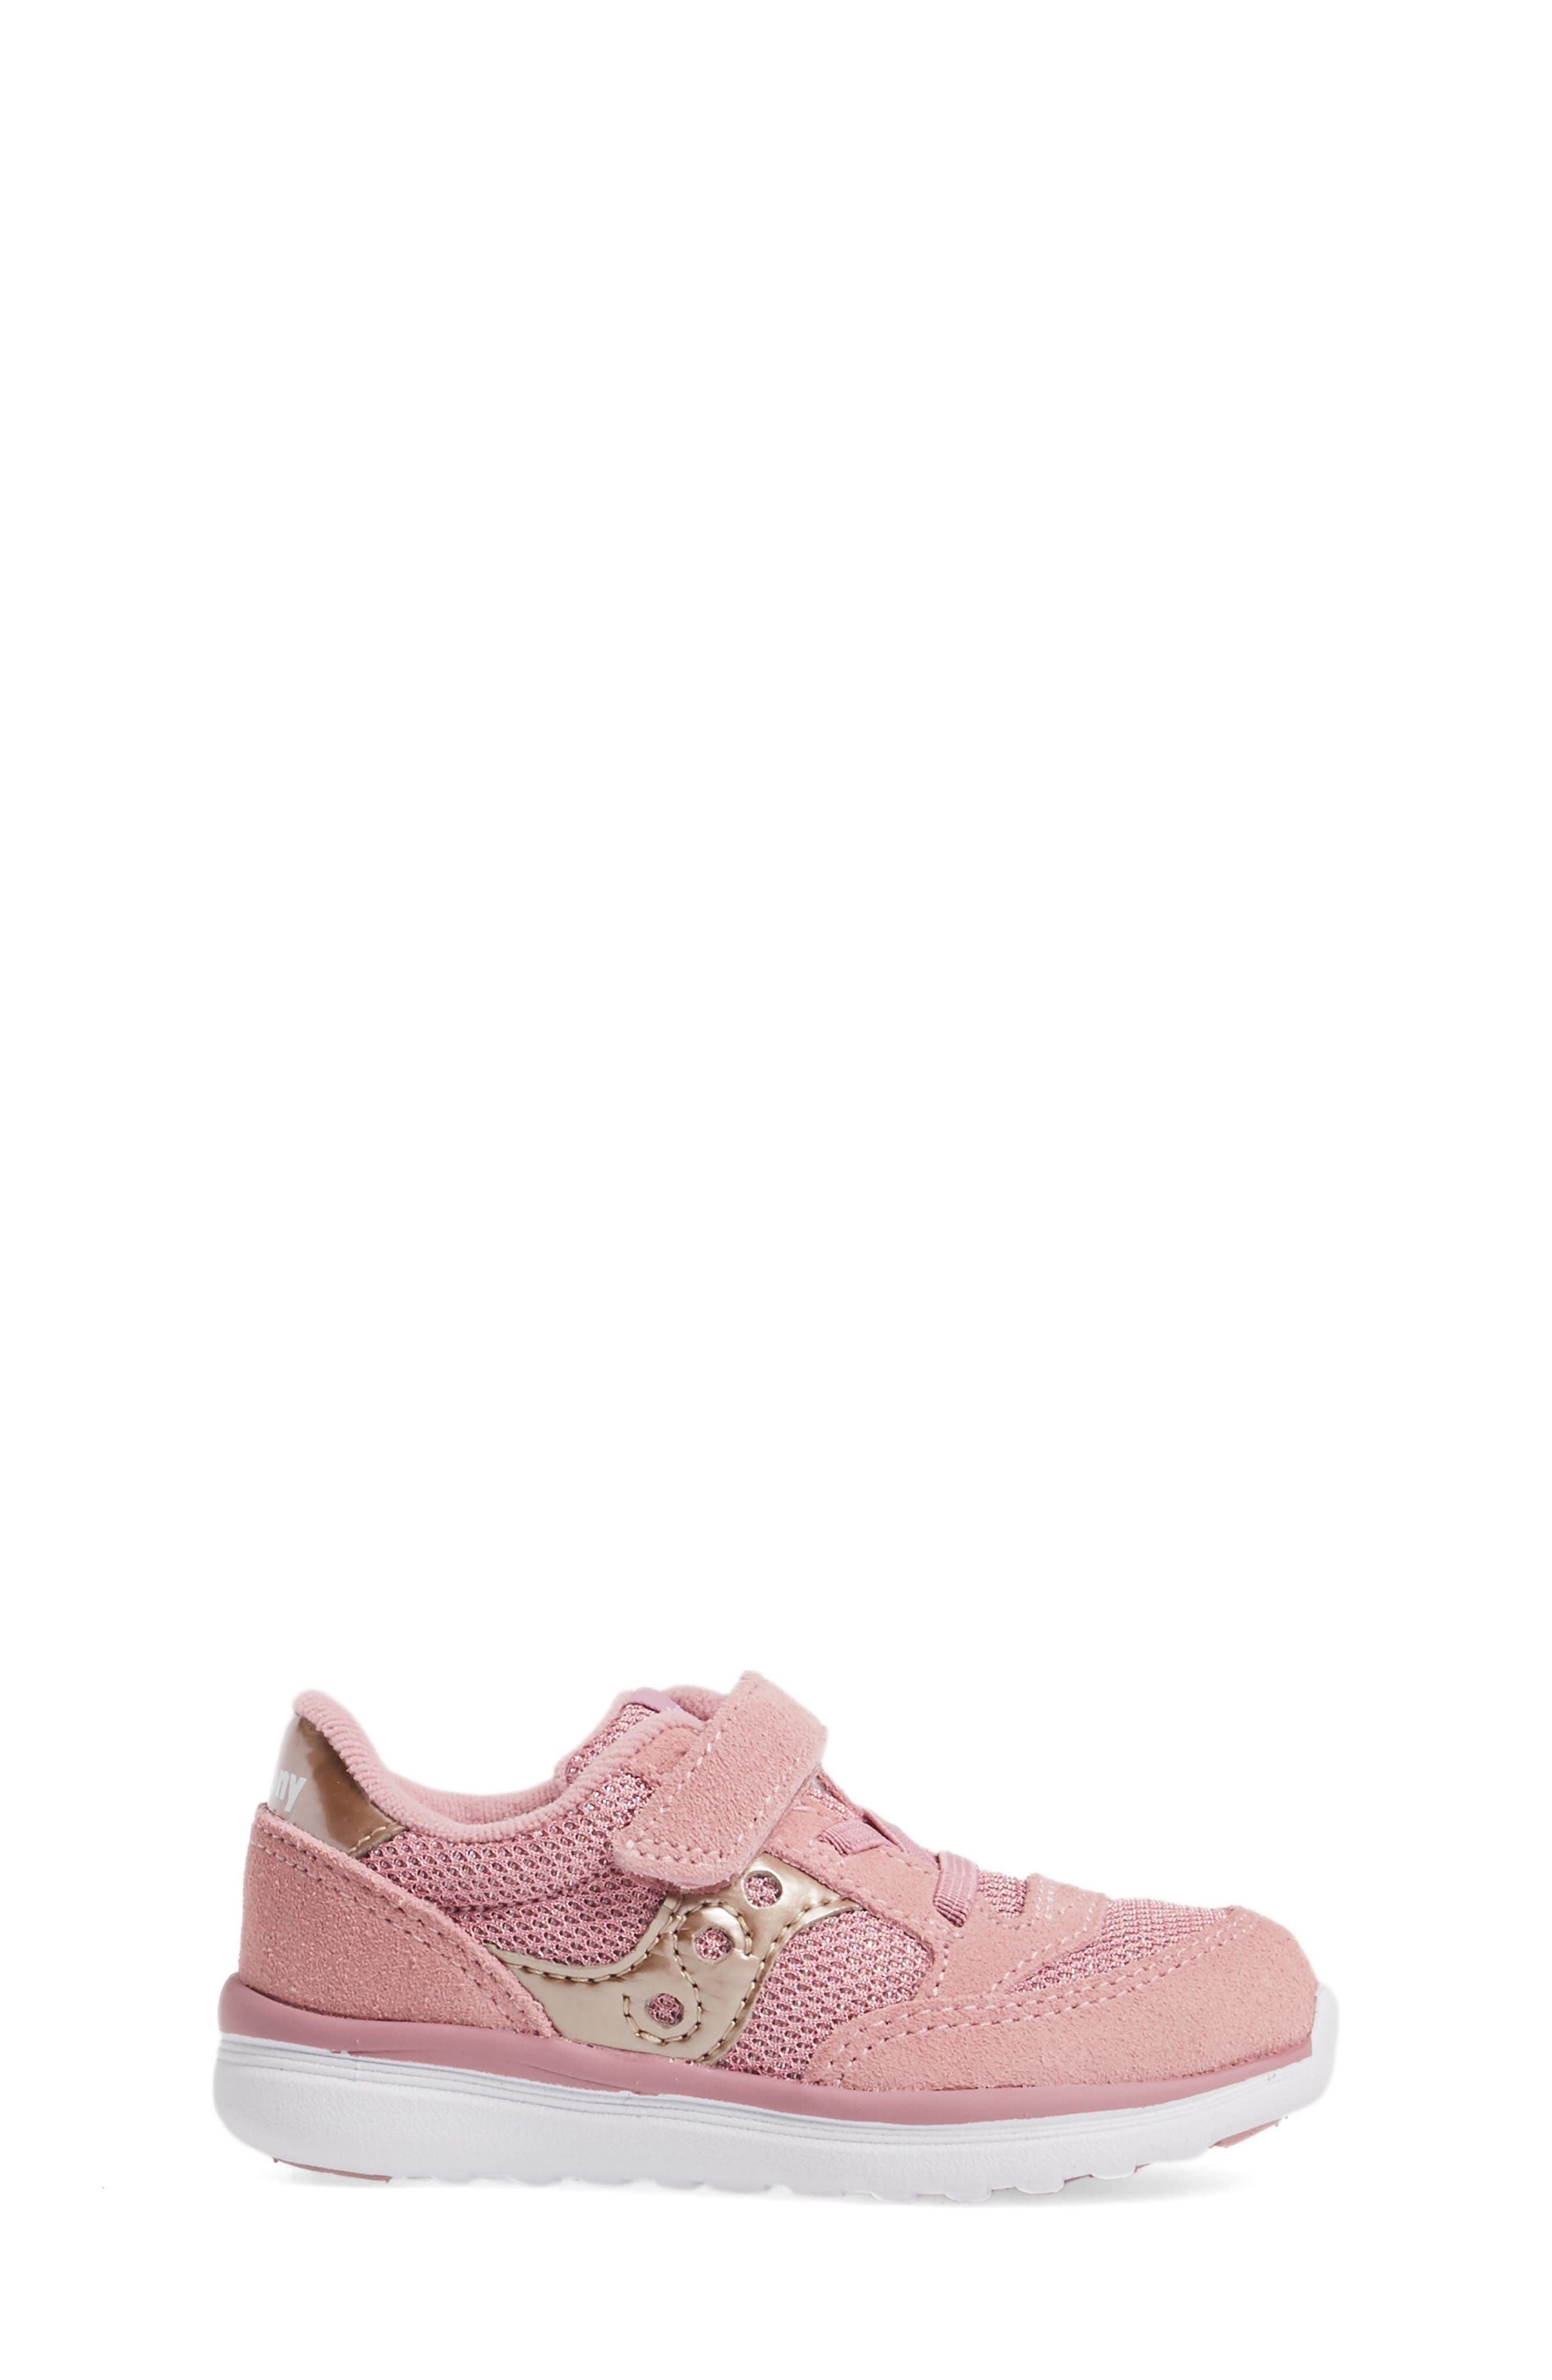 Jazz Lite Sneaker,                             Alternate thumbnail 3, color,                             BLUSH METALLIC